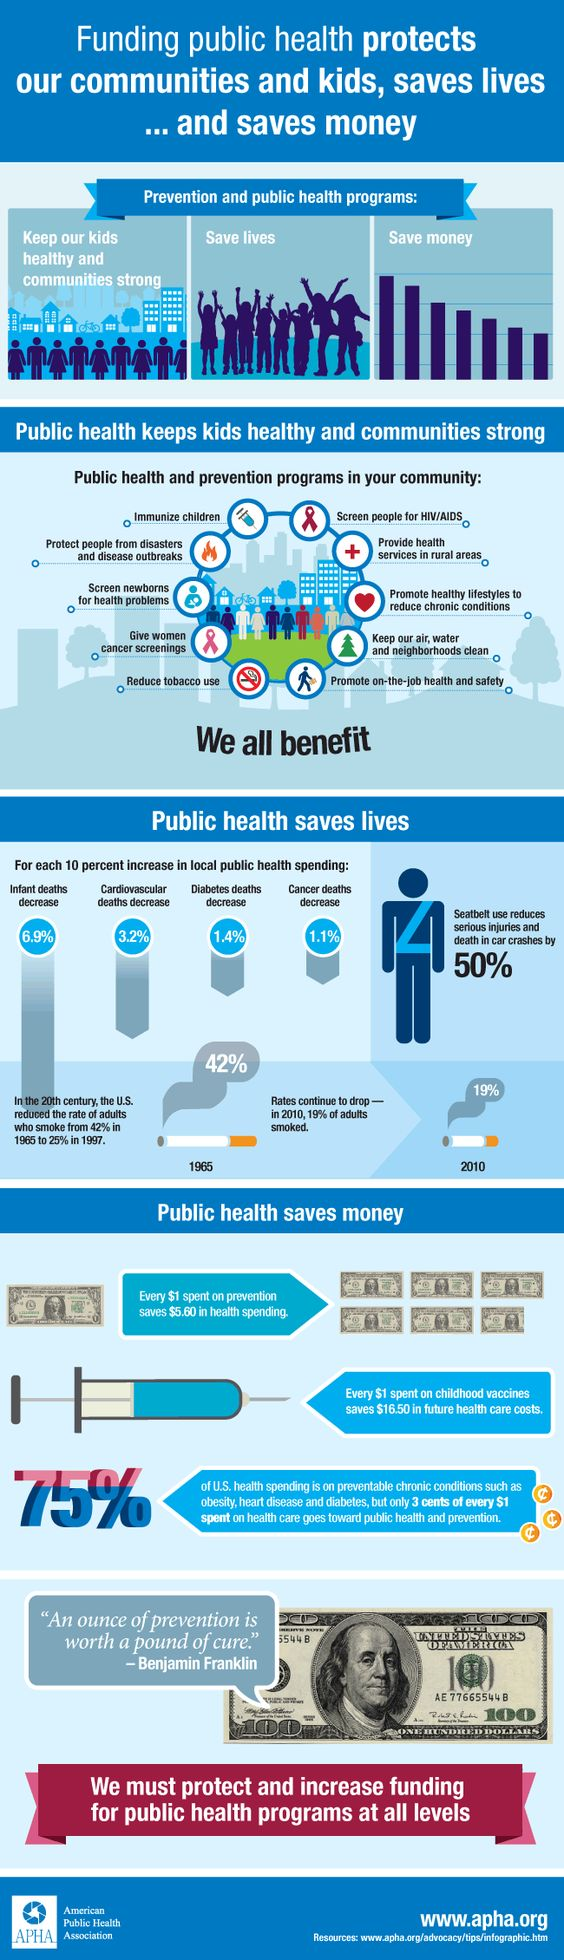 Funding public health protects our communities and kids ...